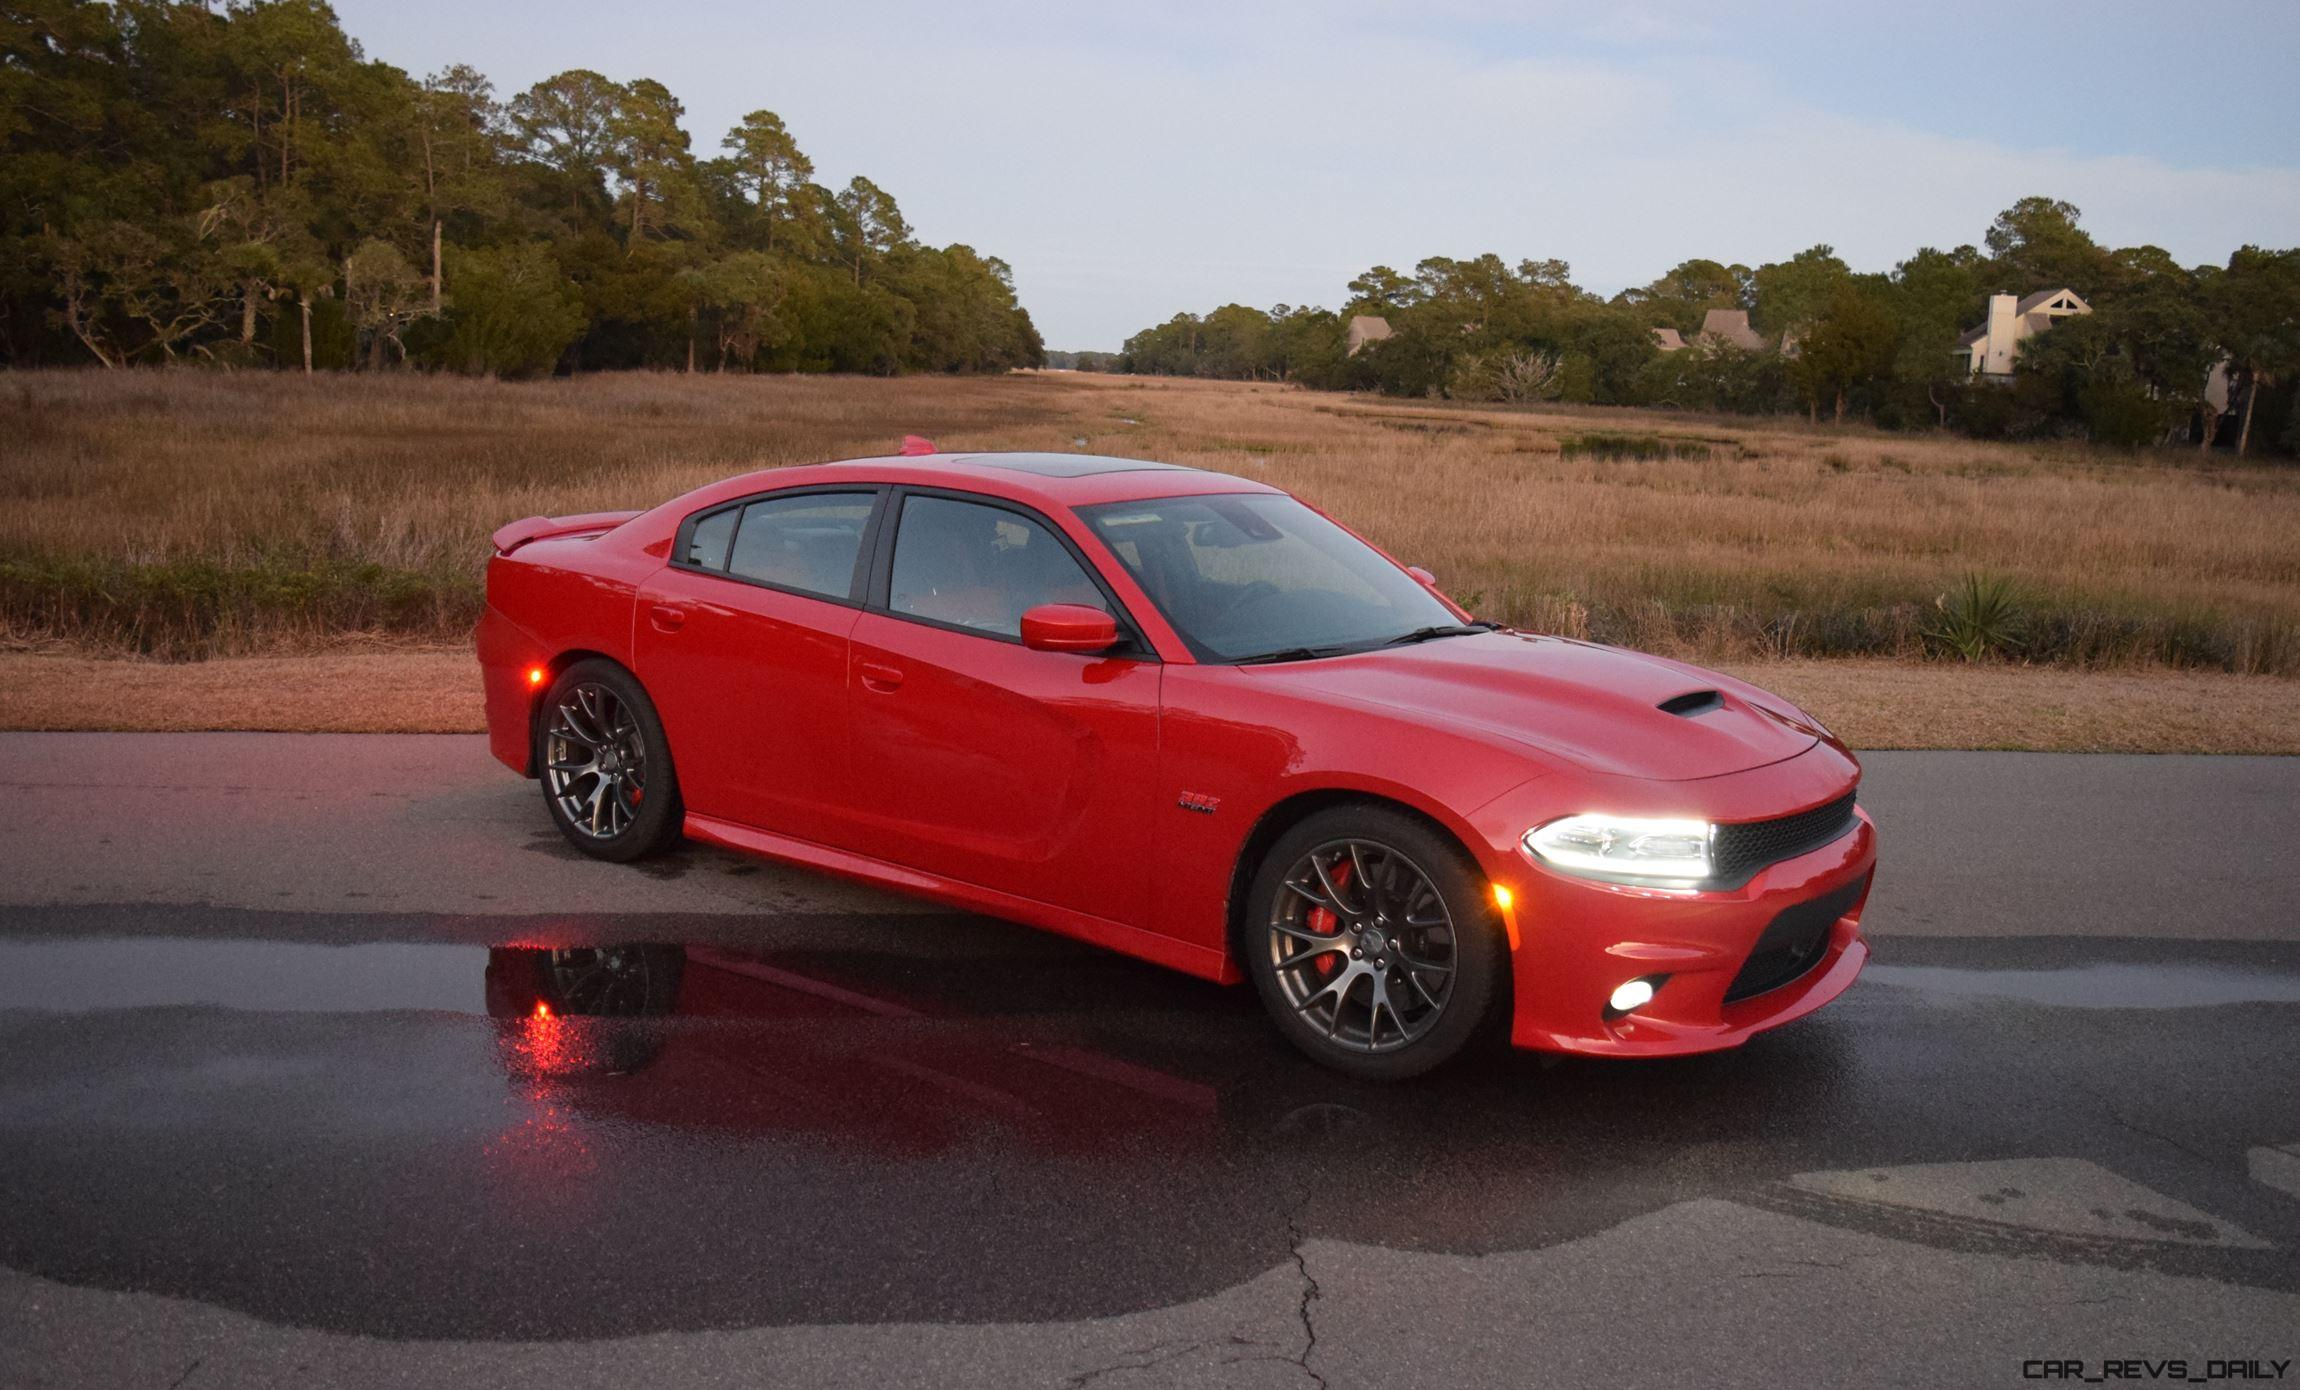 2 Door Charger Hellcat >> 2016 Dodge Charger SRT392 – Road Test Mega Gallery – Car-Revs-Daily.com